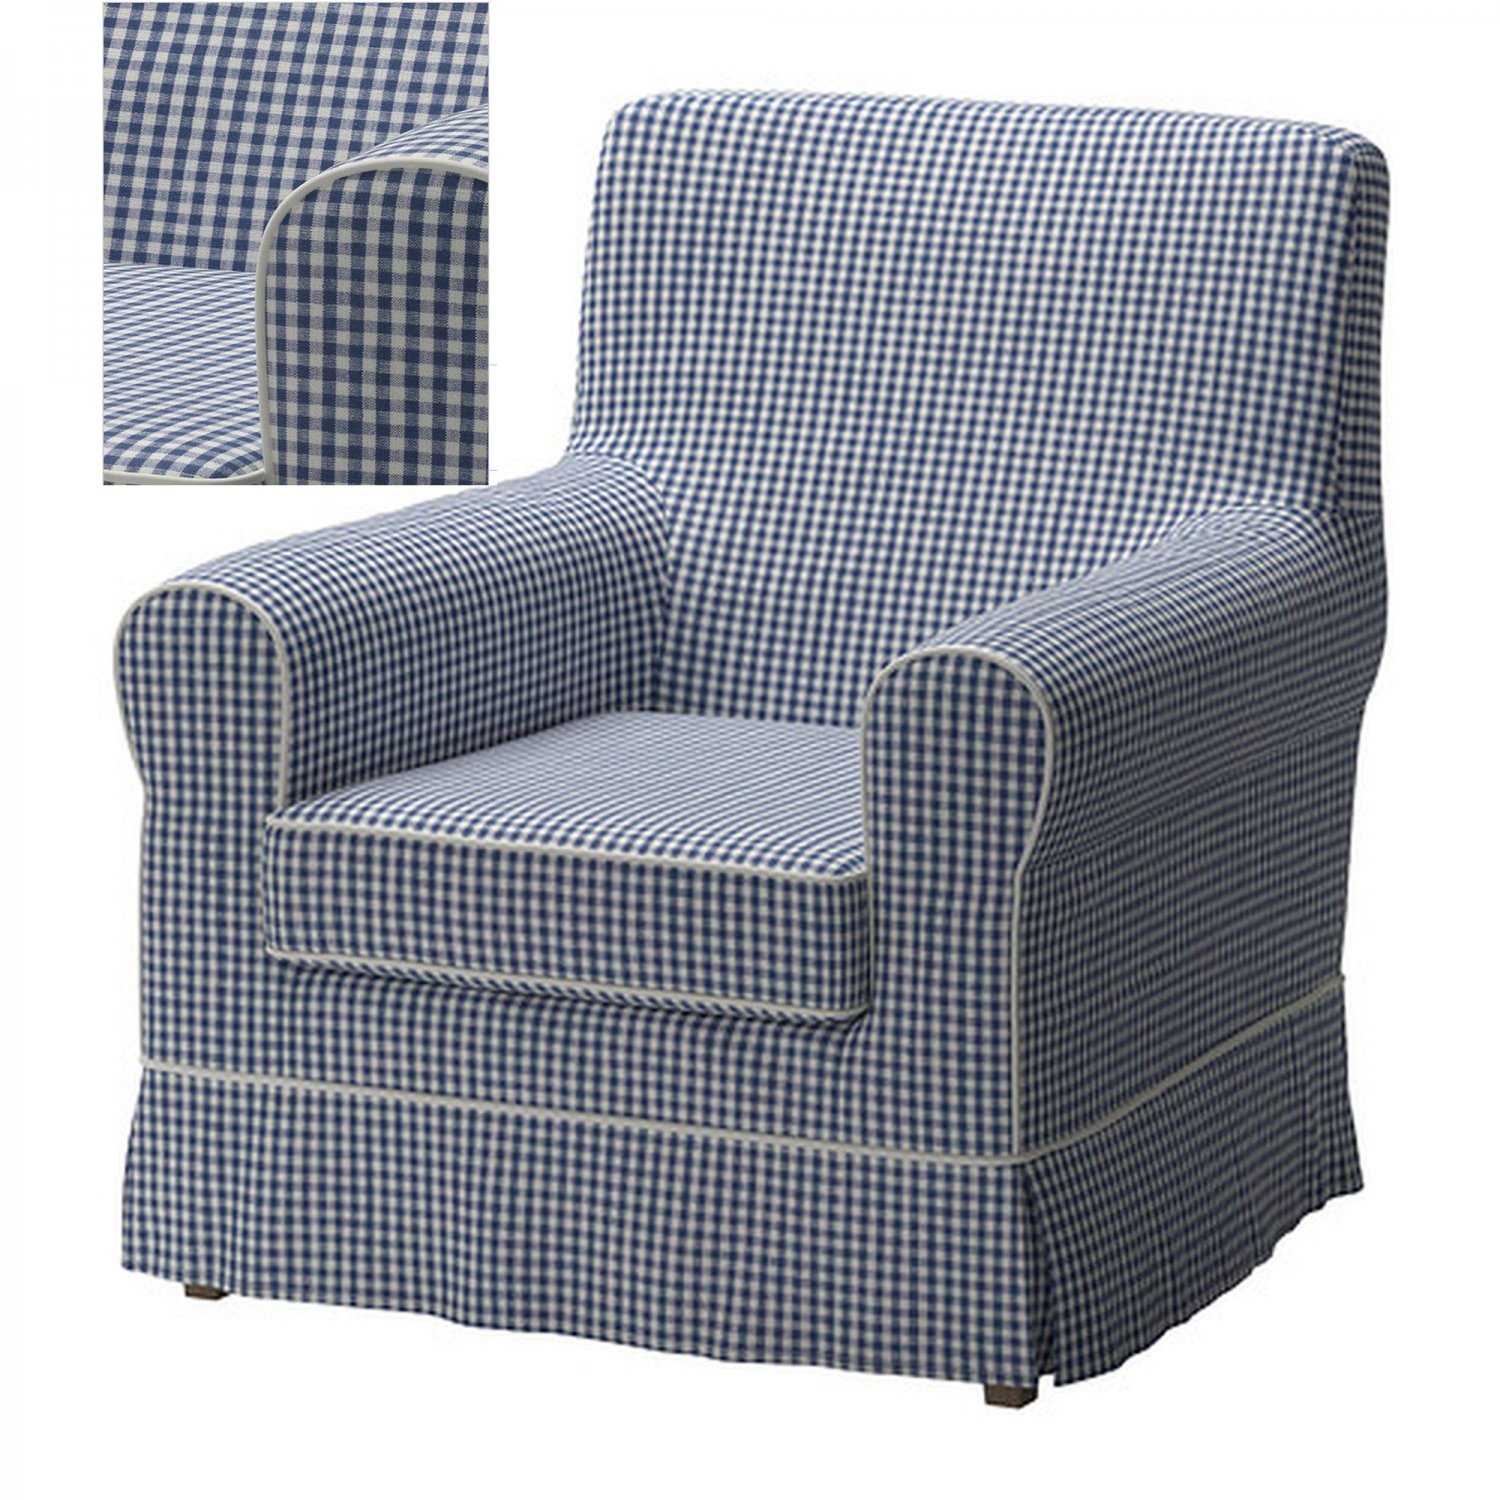 ikea ektorp jennylund armchair slipcover cover norraby blue white checked checks plaid. Black Bedroom Furniture Sets. Home Design Ideas